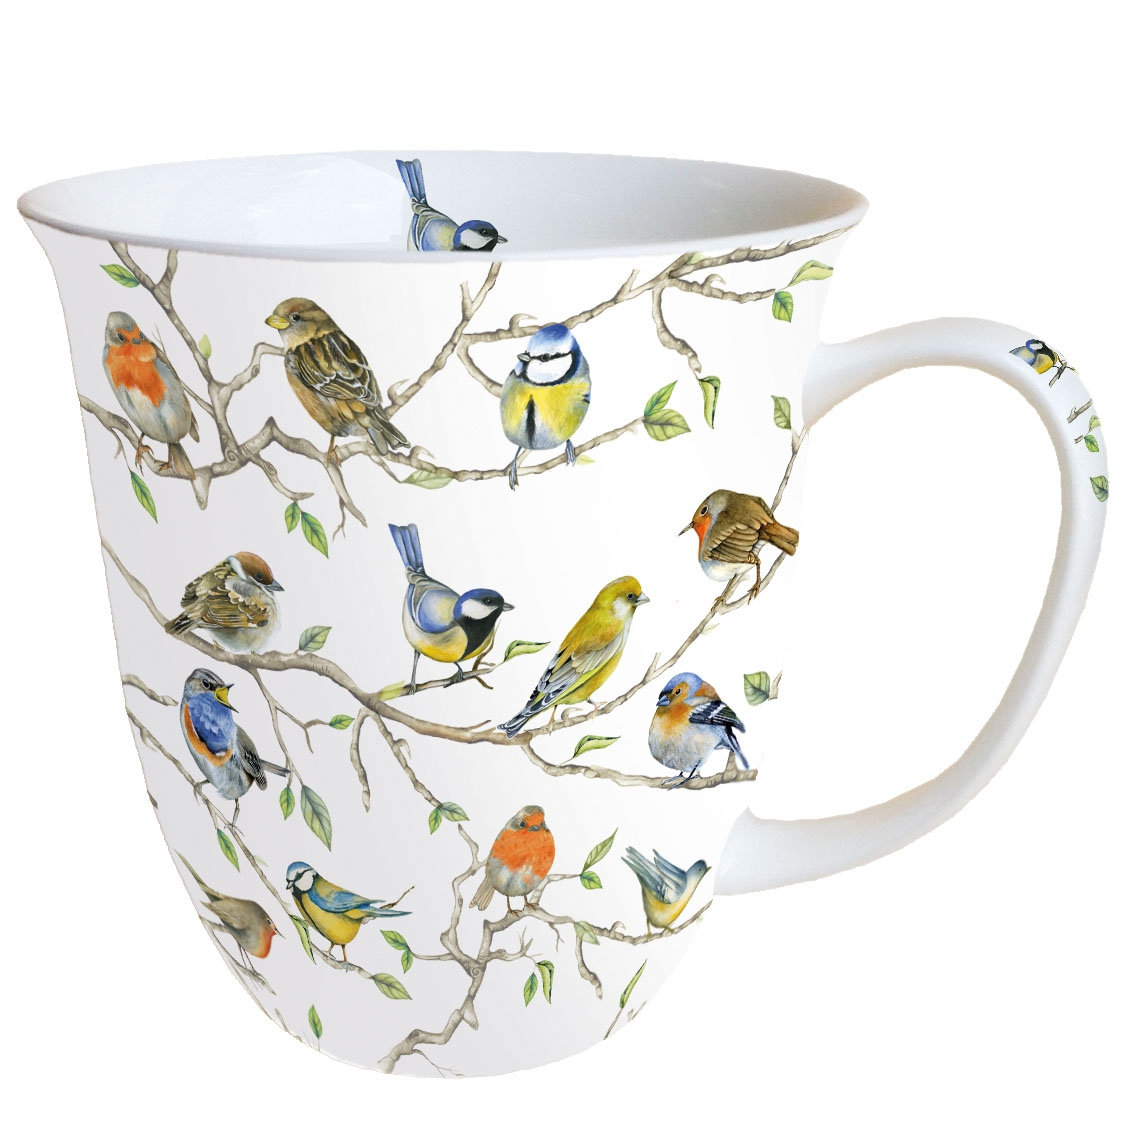 Puchar Porcelany - Birds Meeting